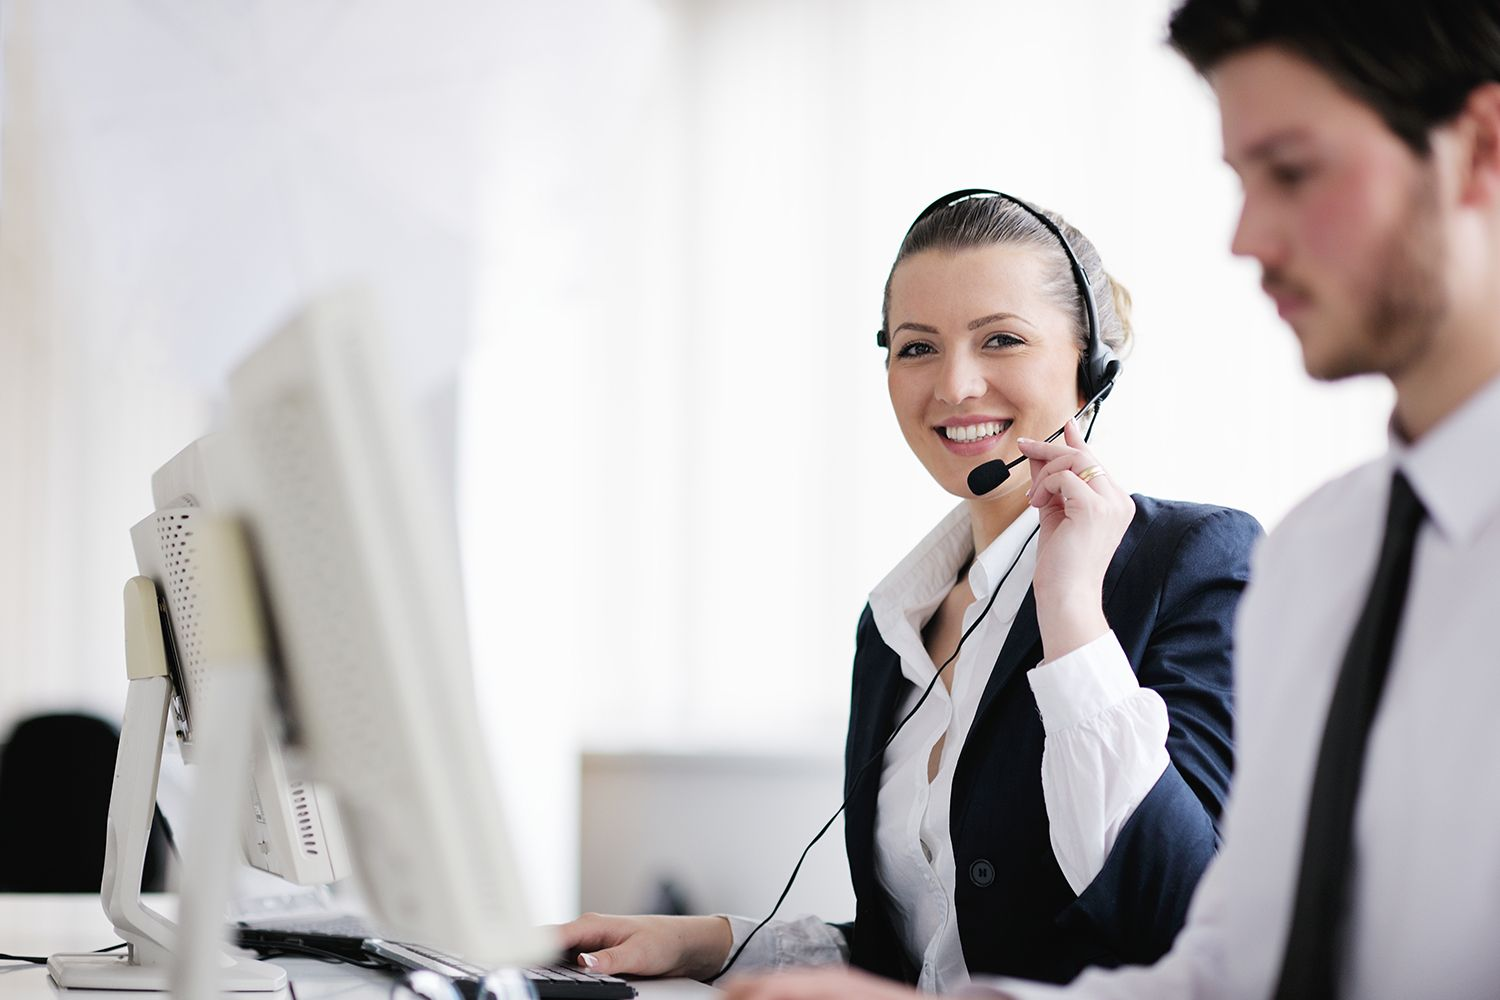 Call Center Training- Improve your phone skills, increase sales ...